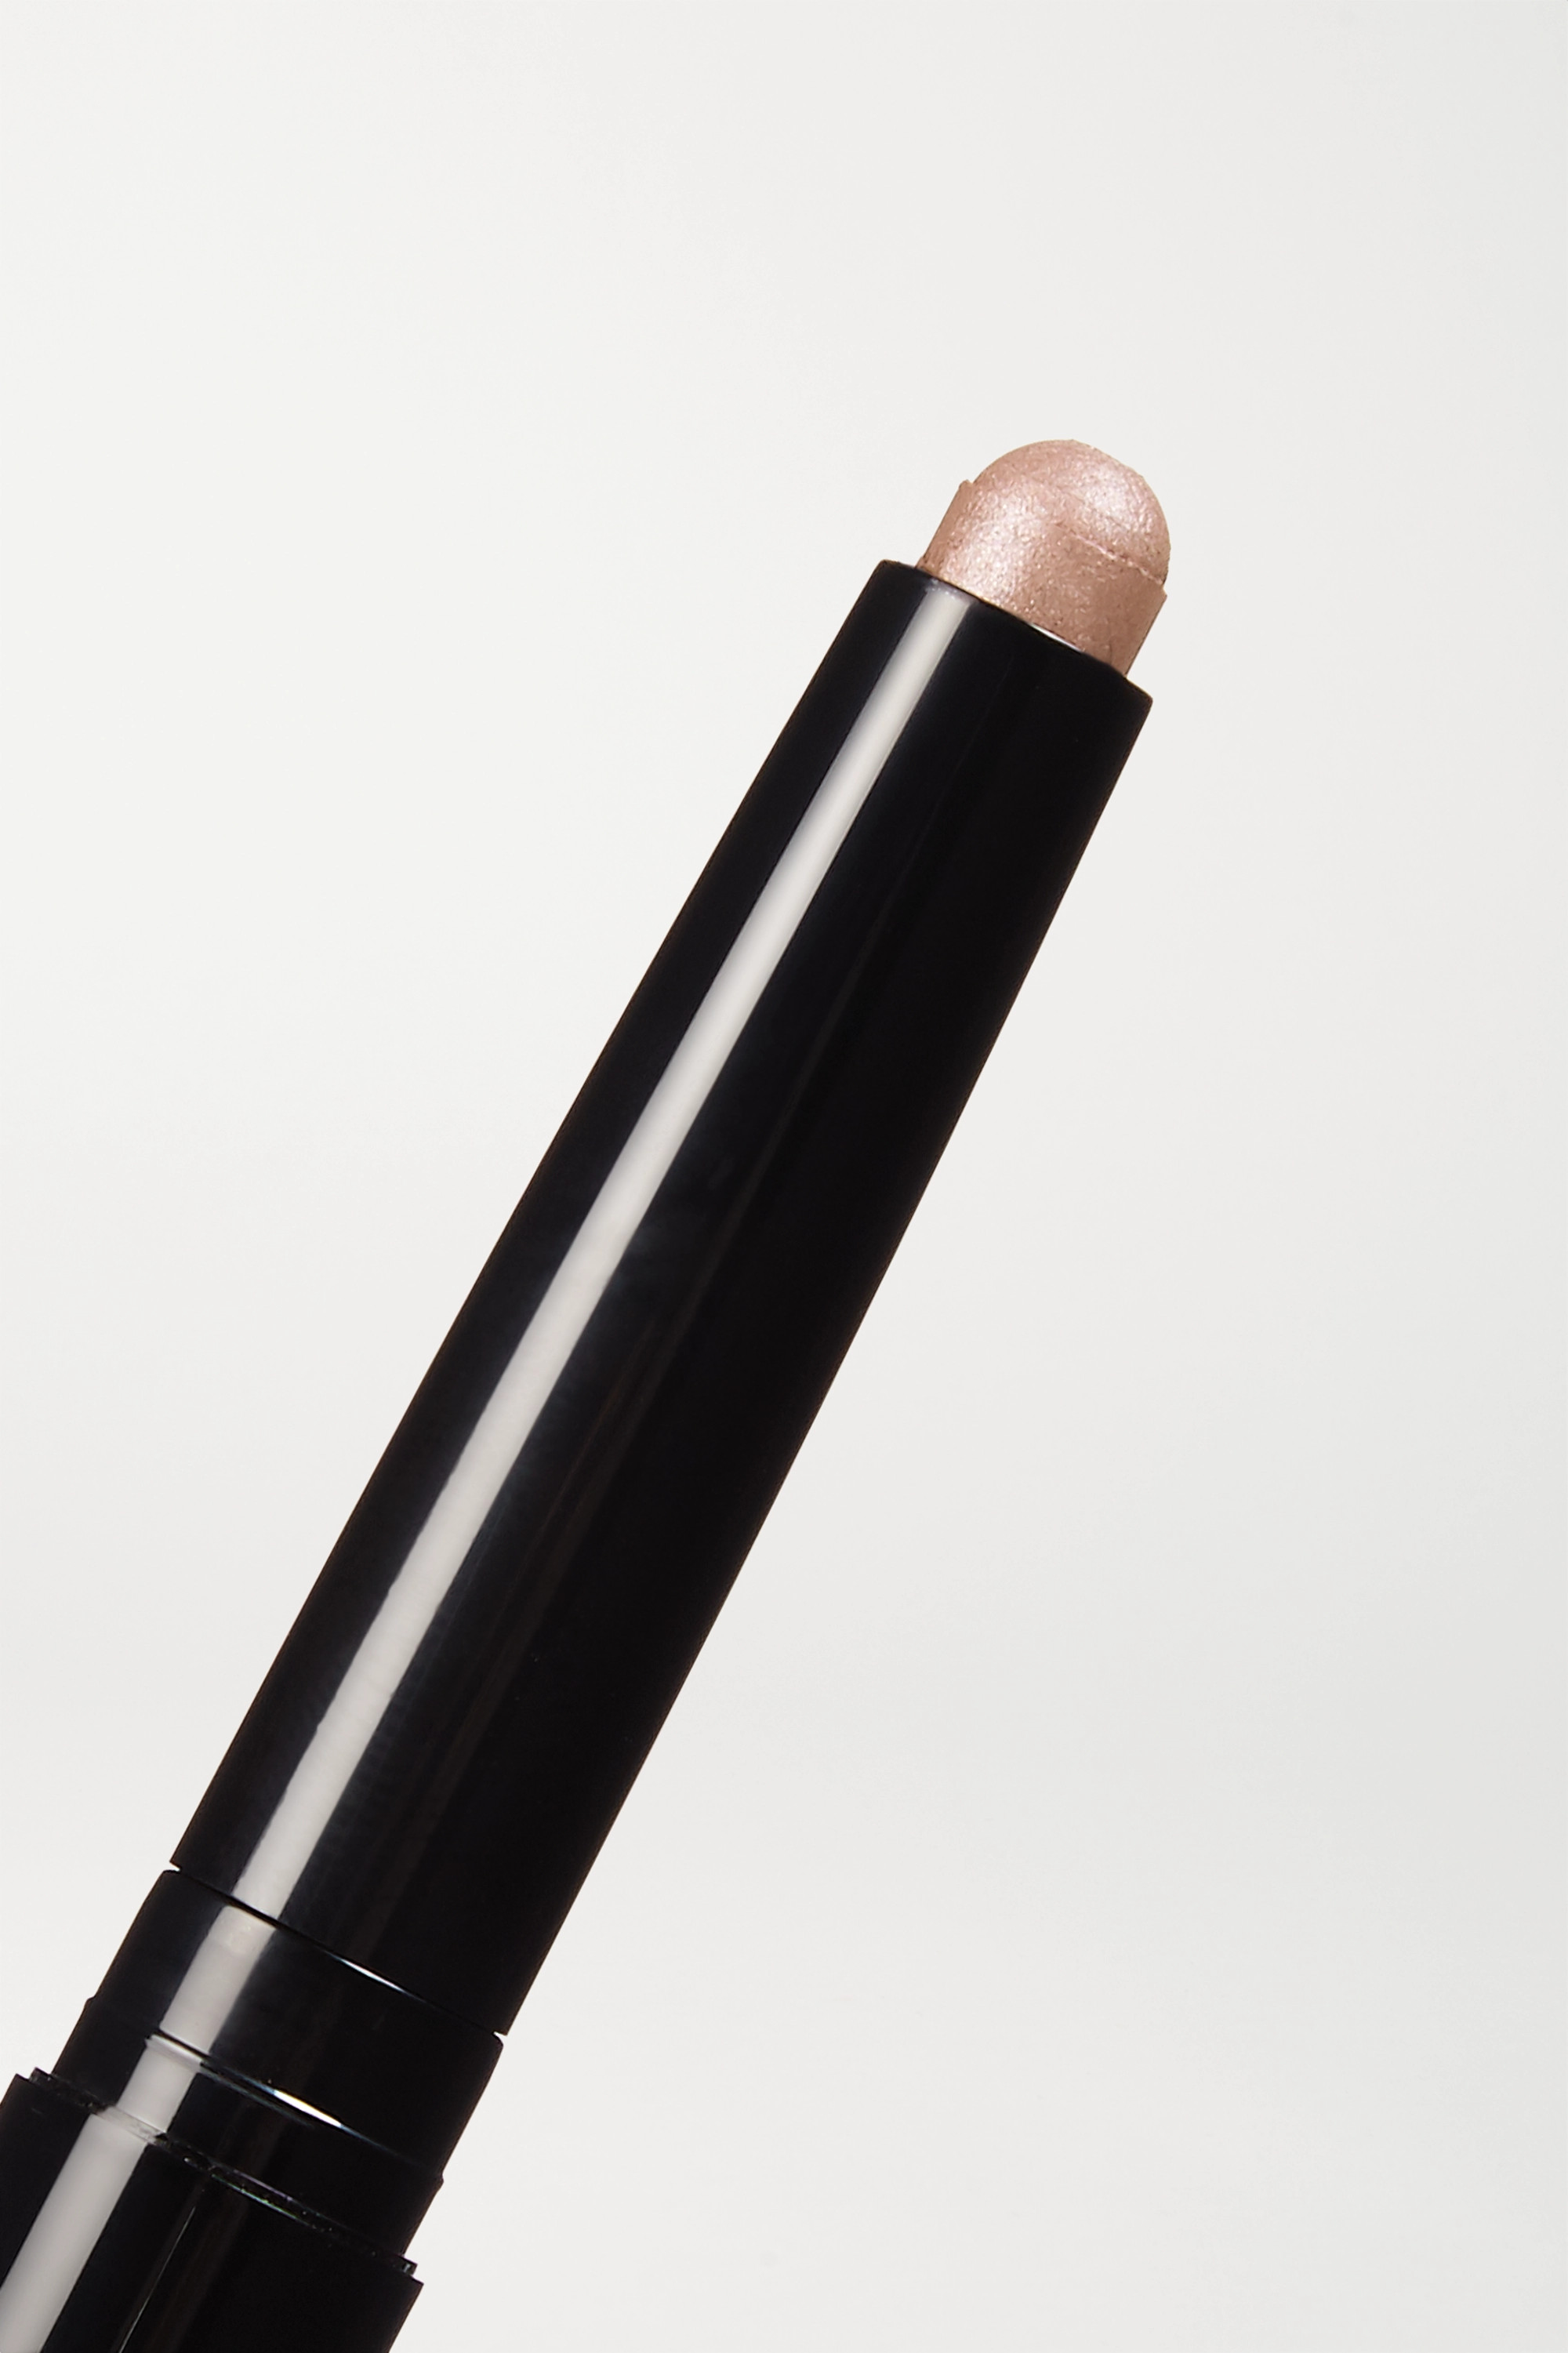 Bobbi Brown Longwear Cream Shadow Stick – Truffle – Lidschattenstift